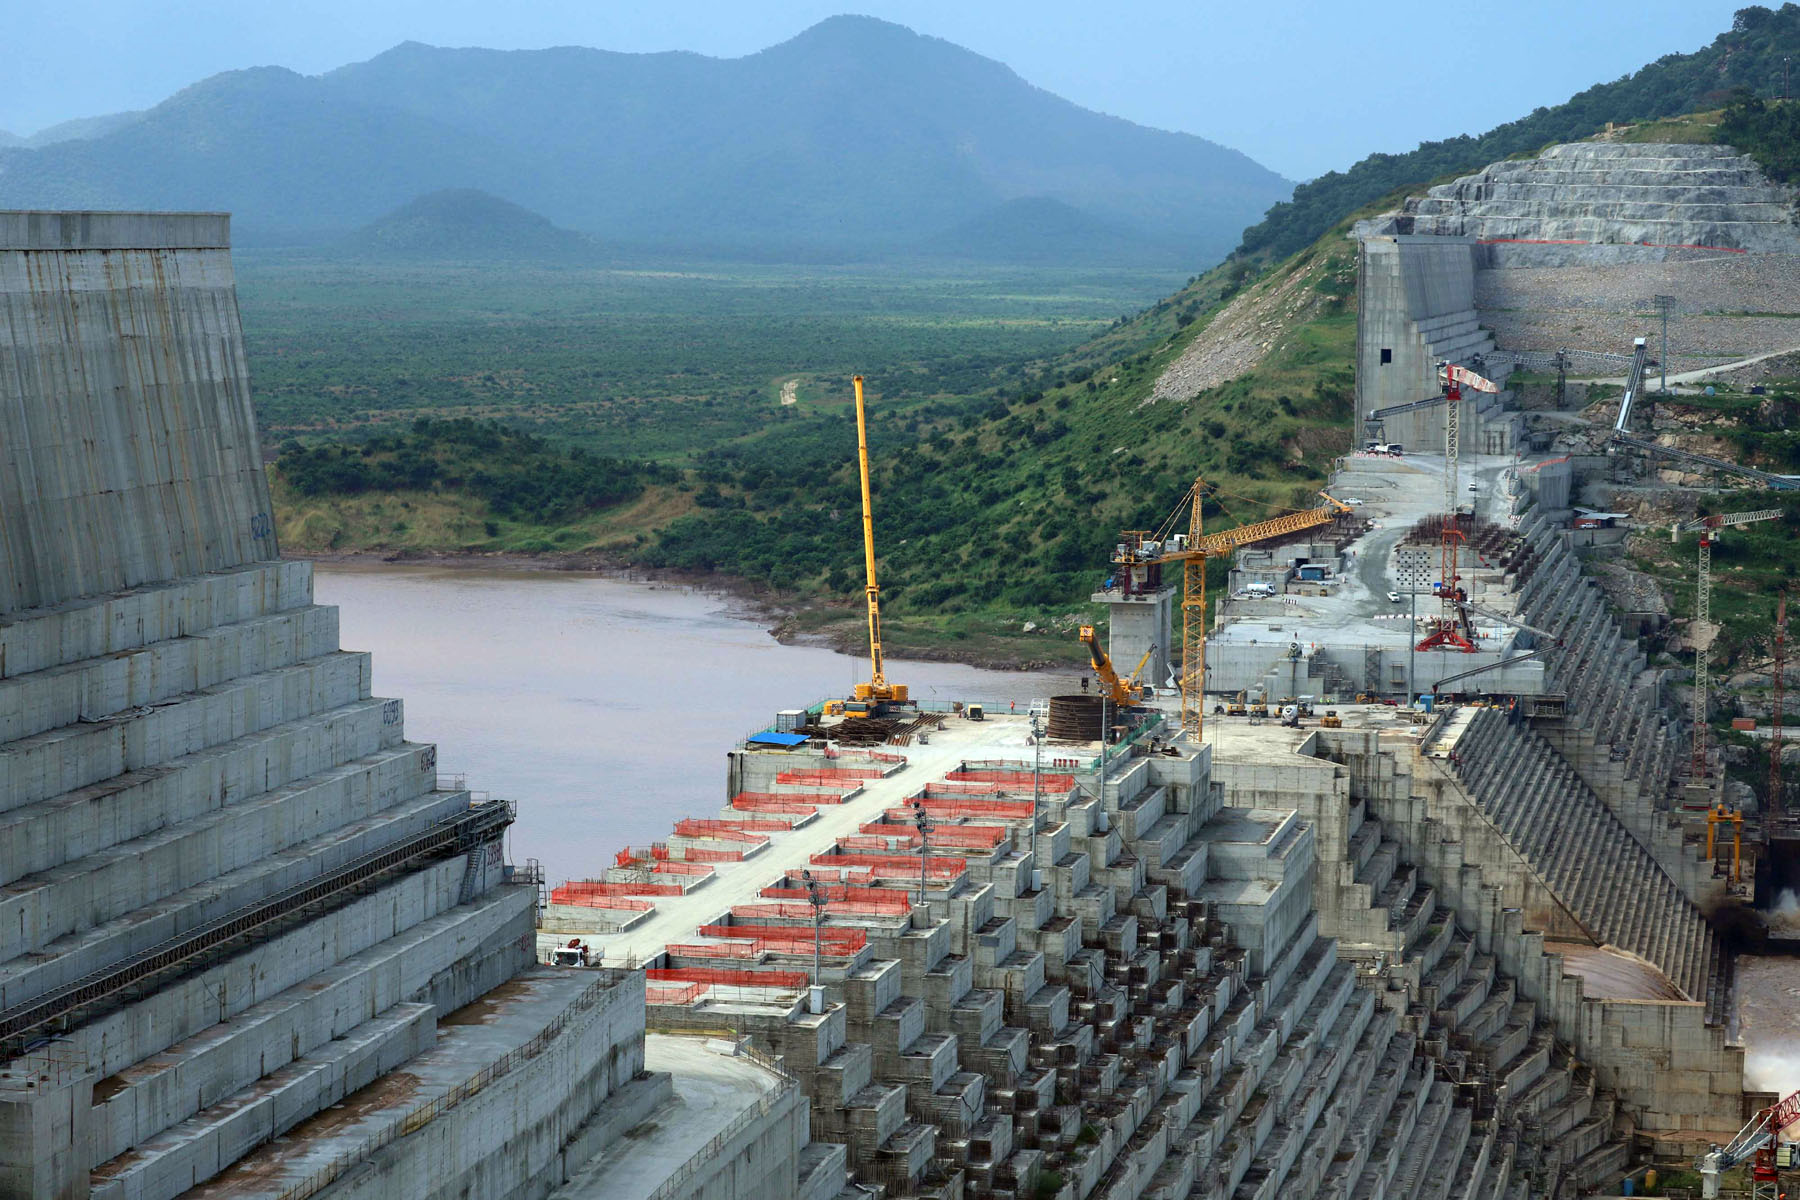 Ethiopia's Grand Renaissance Dam under construction in Guba Woreda, Benishangul Gumuz Region, Ethiopia, September 26. (Reuters)